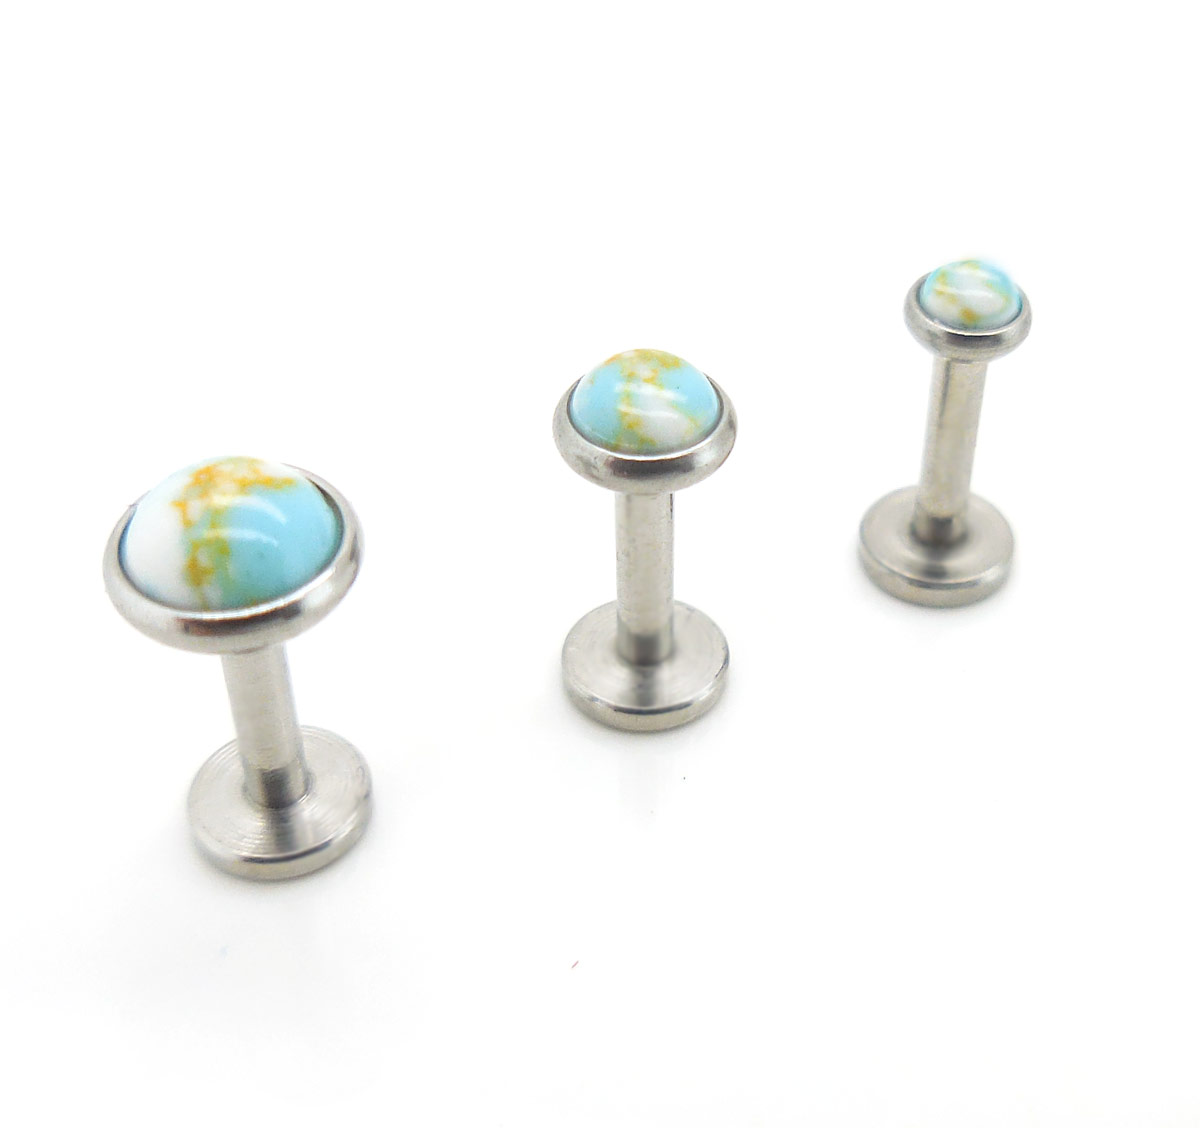 16G 6mm 2,3,4,5mm Turquoise Triple Forward Helix Cartilage Stud Earring Labret